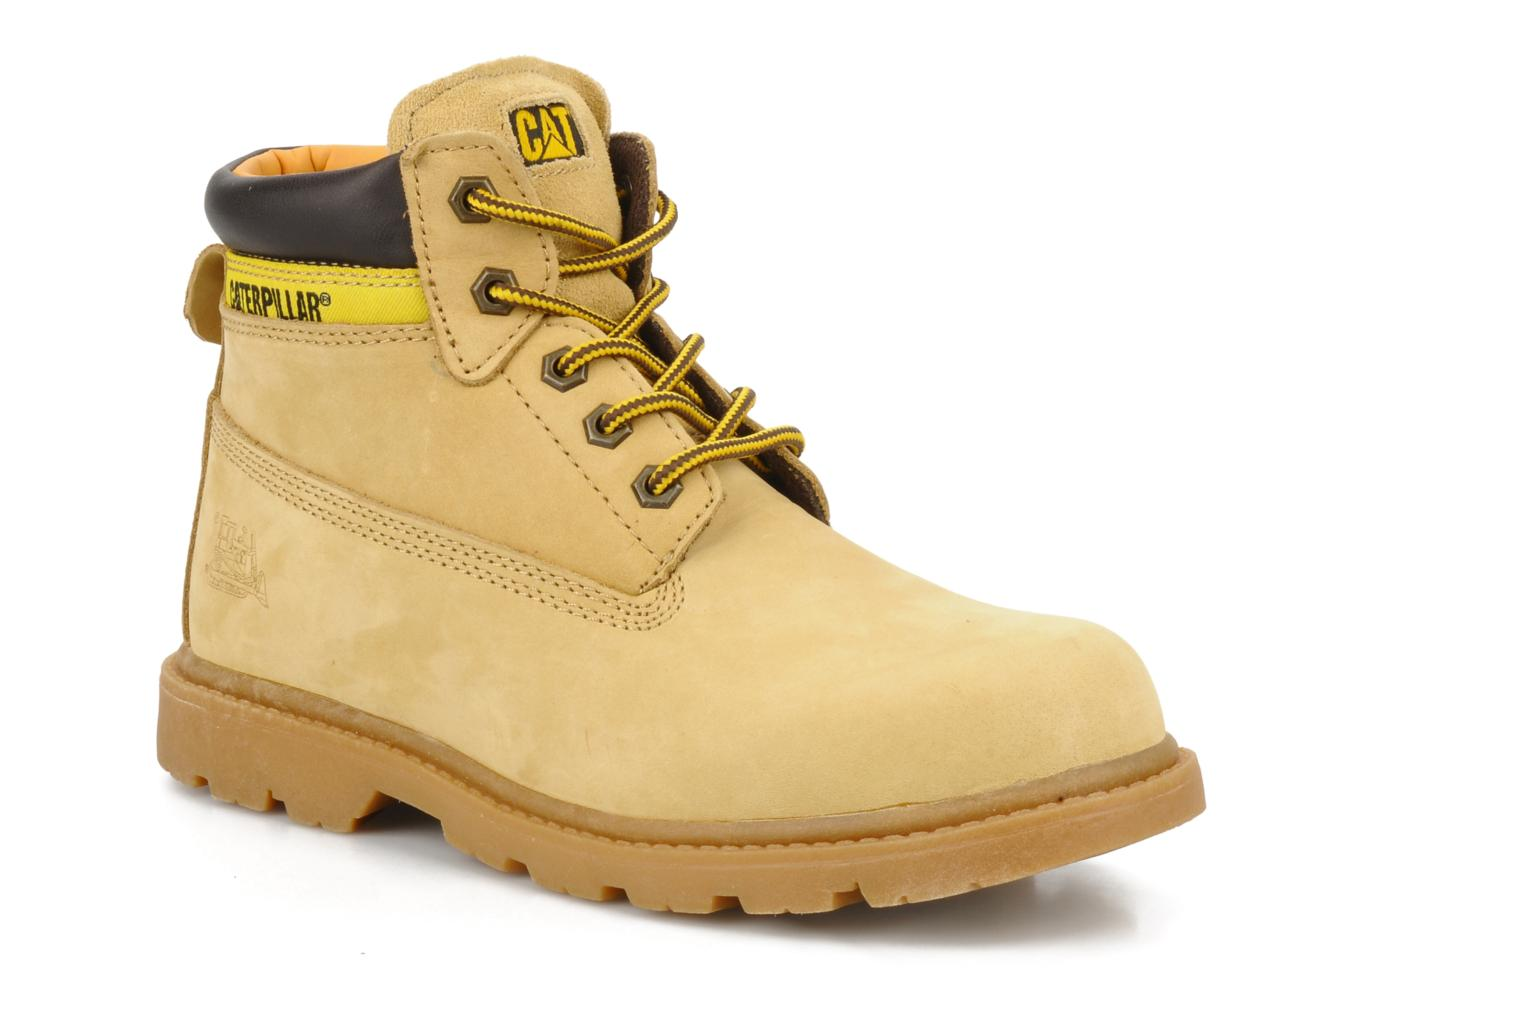 Bottines et boots Caterpillar Colorado Plus Beige vue détail/paire